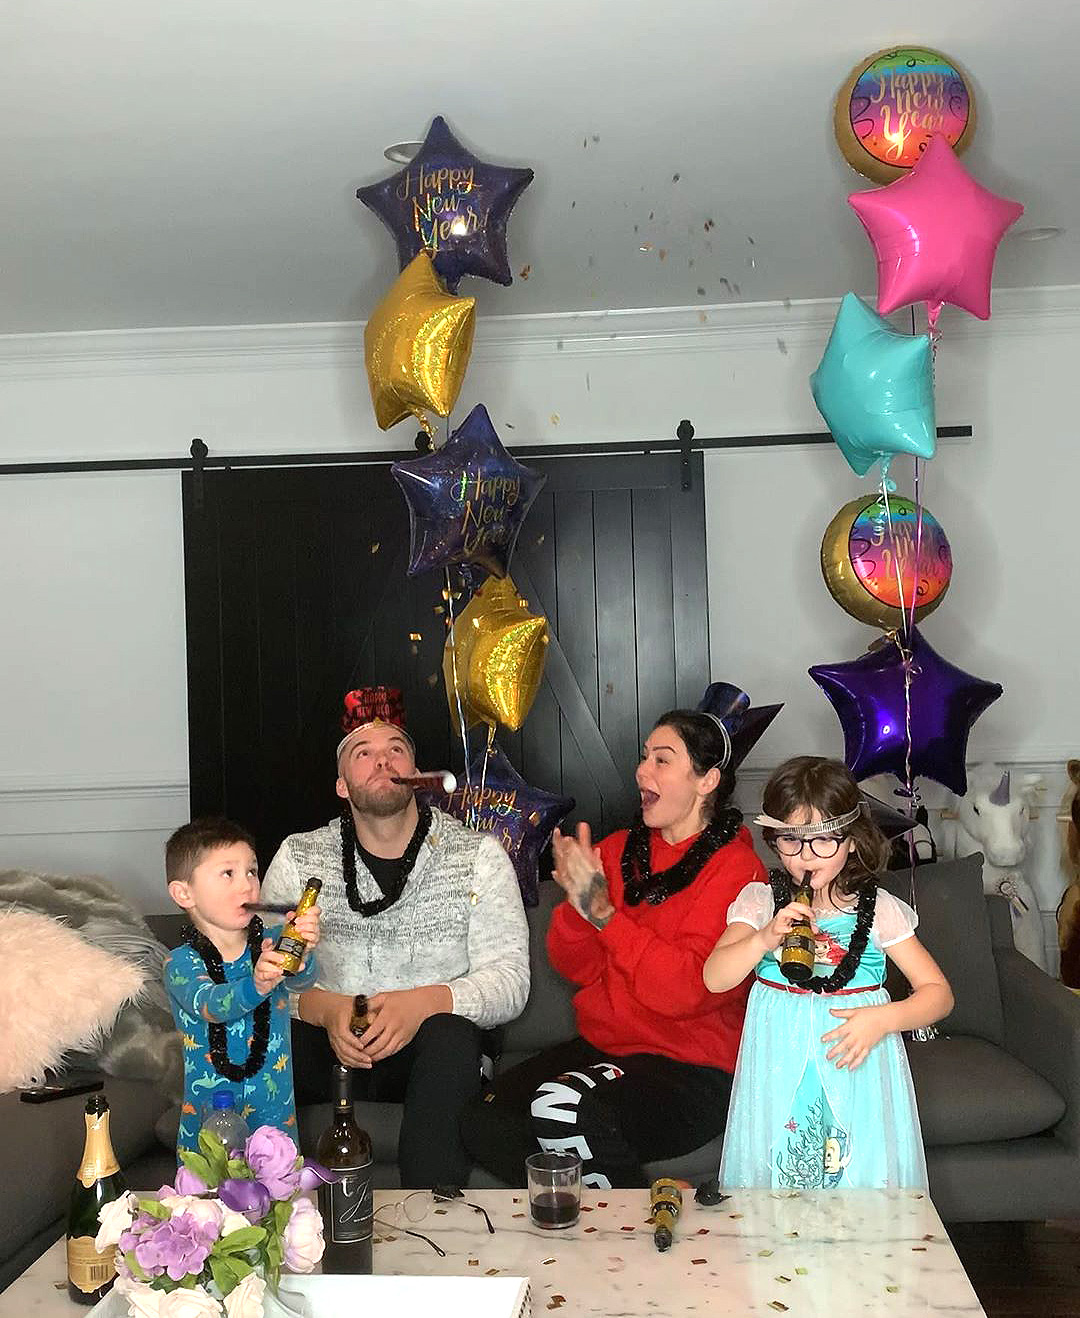 JWOWW and family